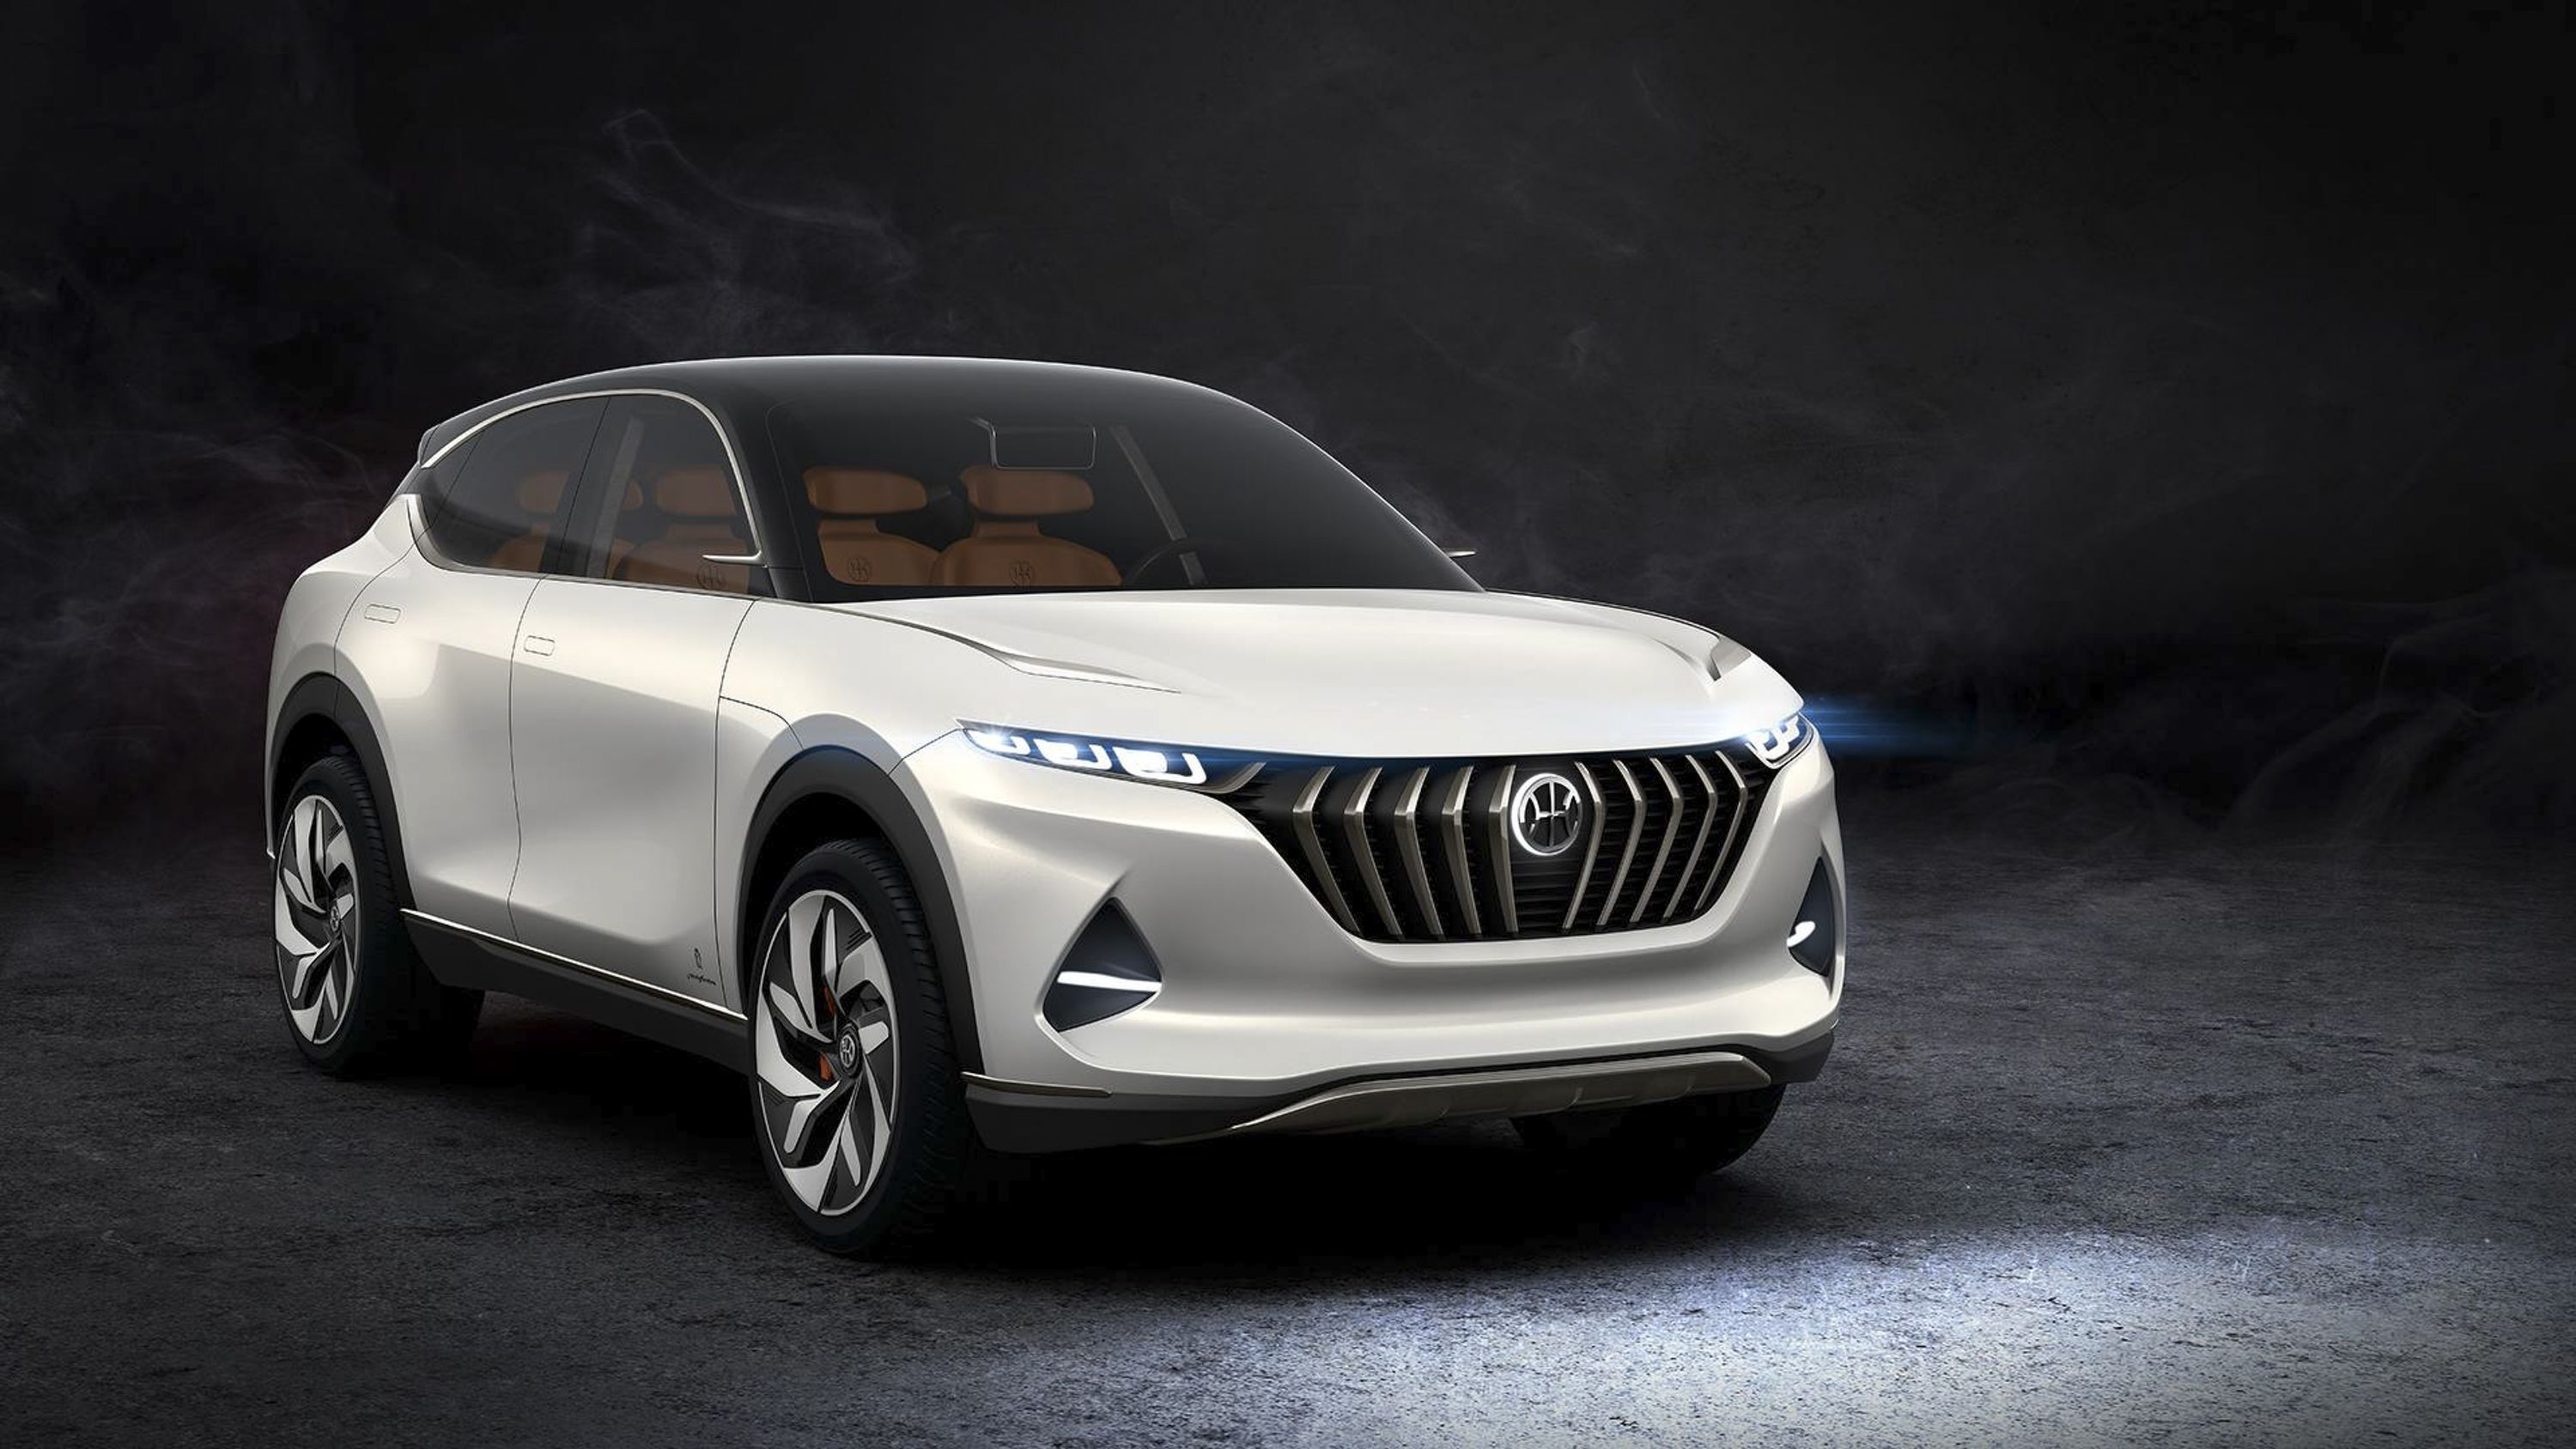 Pininfarina K350 Concept Is The Electric Suv You Want To See Hit